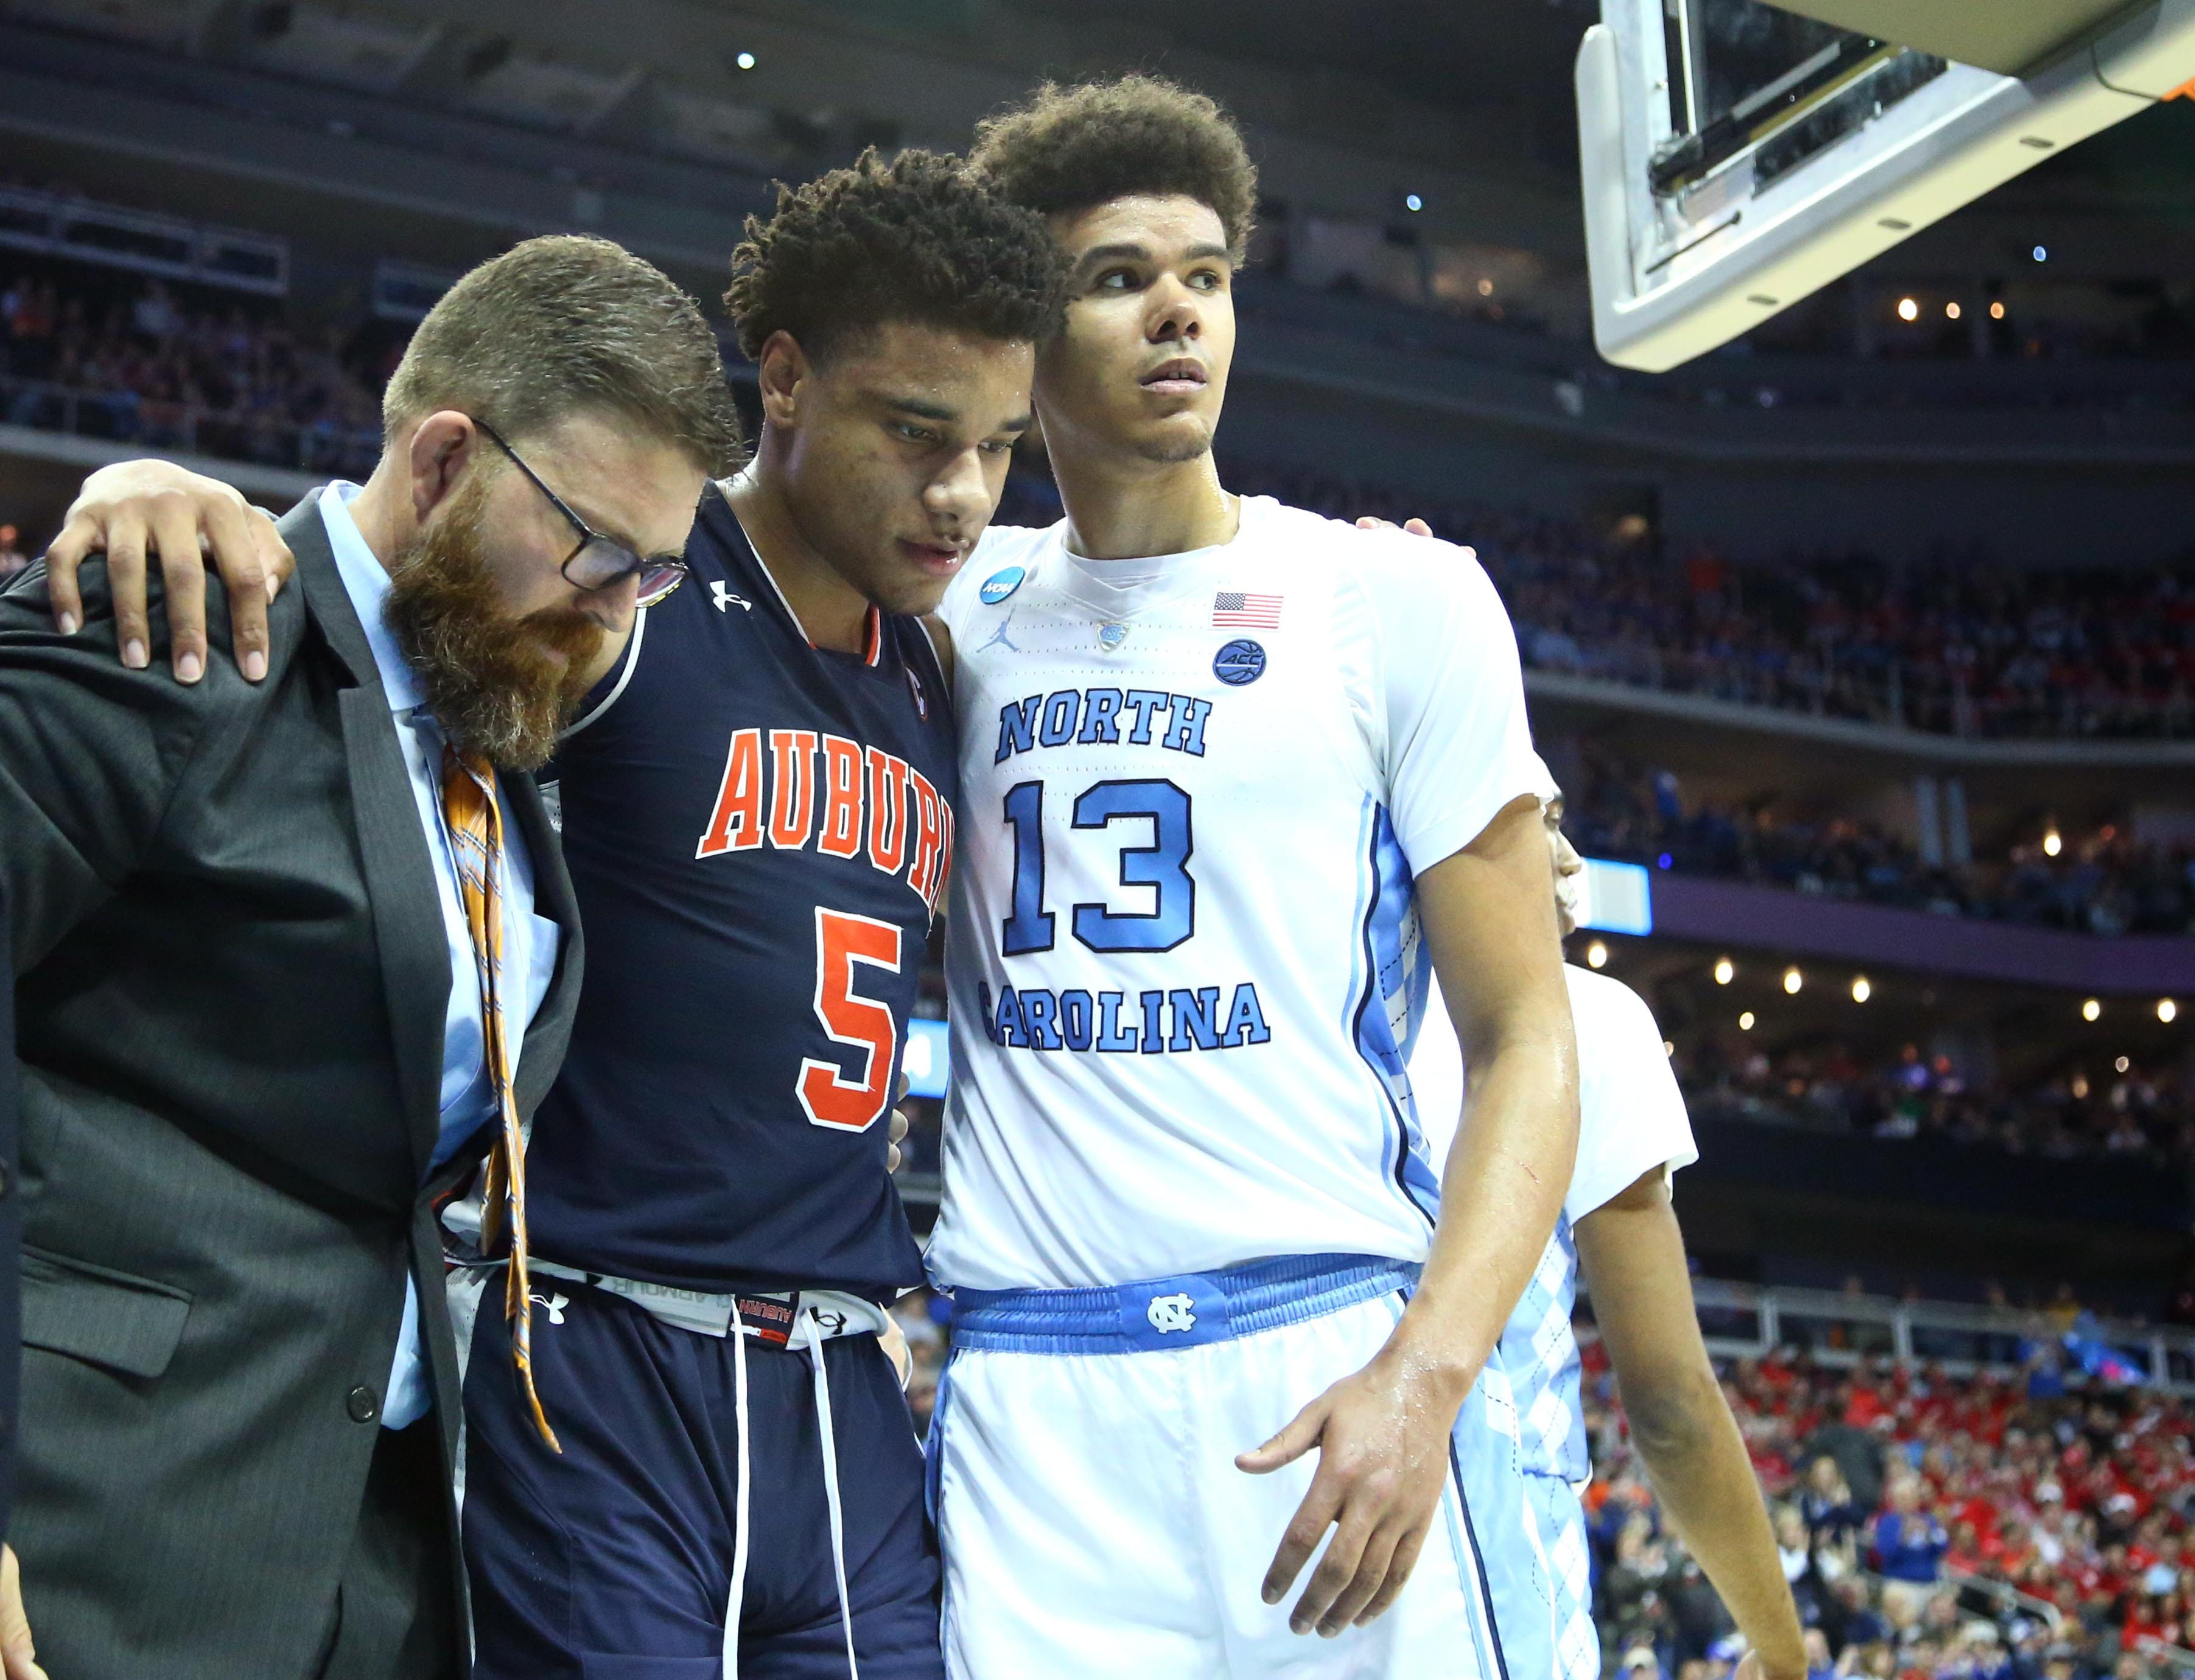 North Carolina Players Embrace Injured Opponent In Great